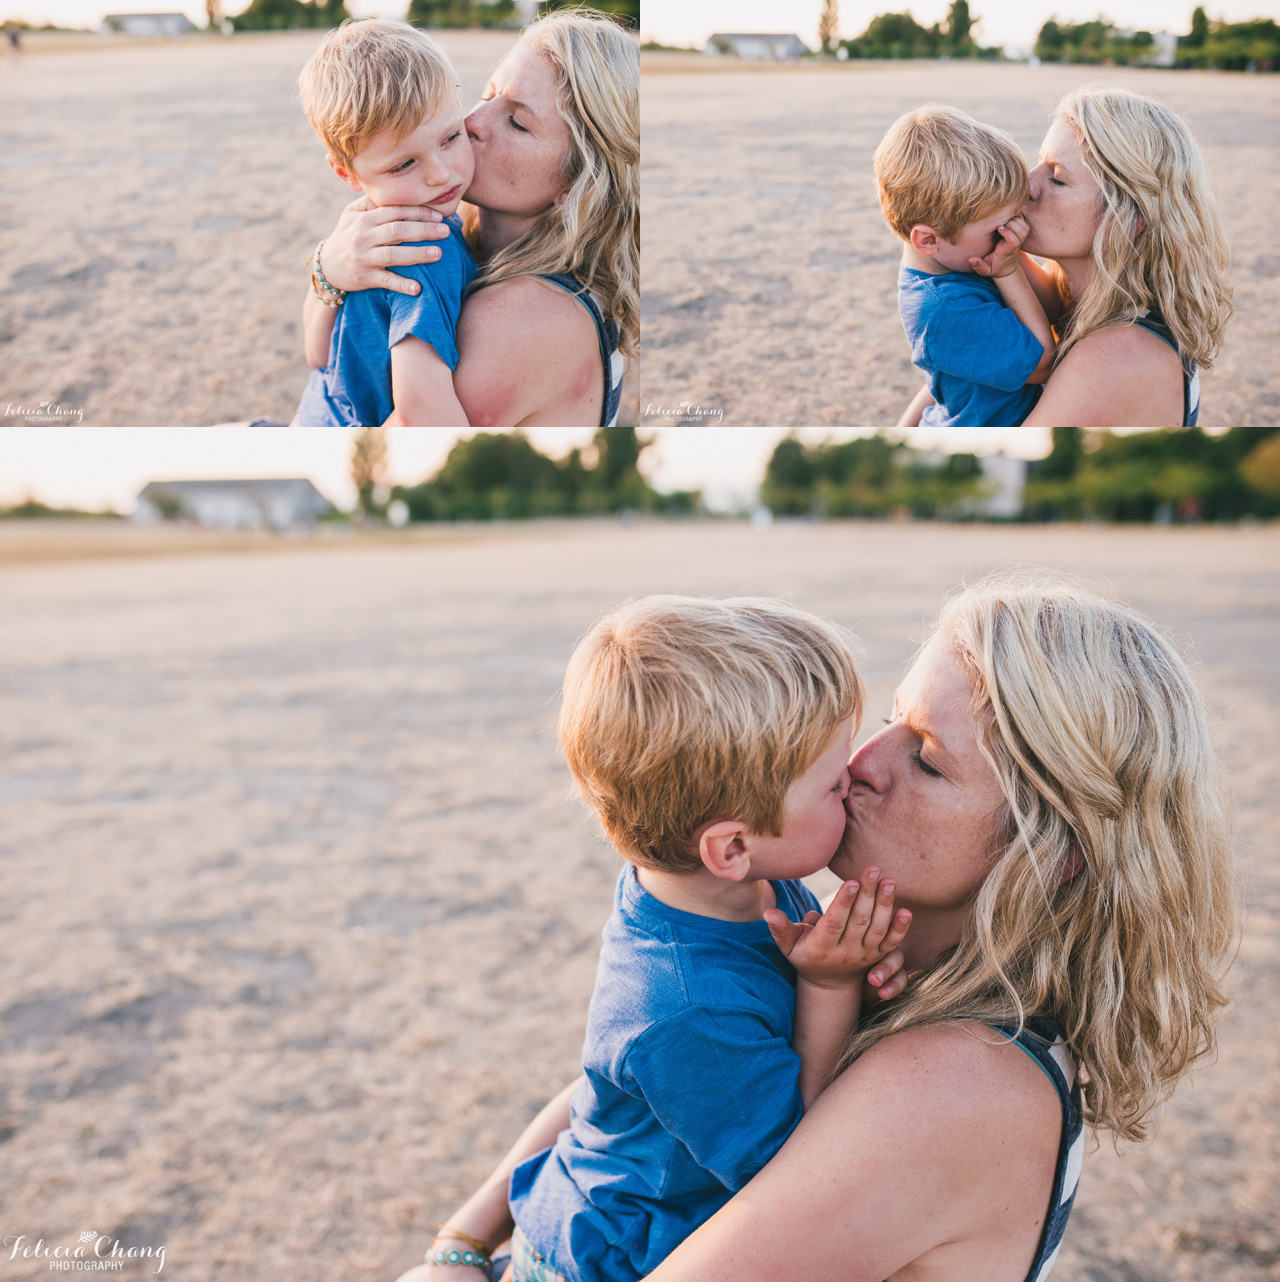 mom with her son cuddling, vancouver family photographer, Felicia Chang Photography